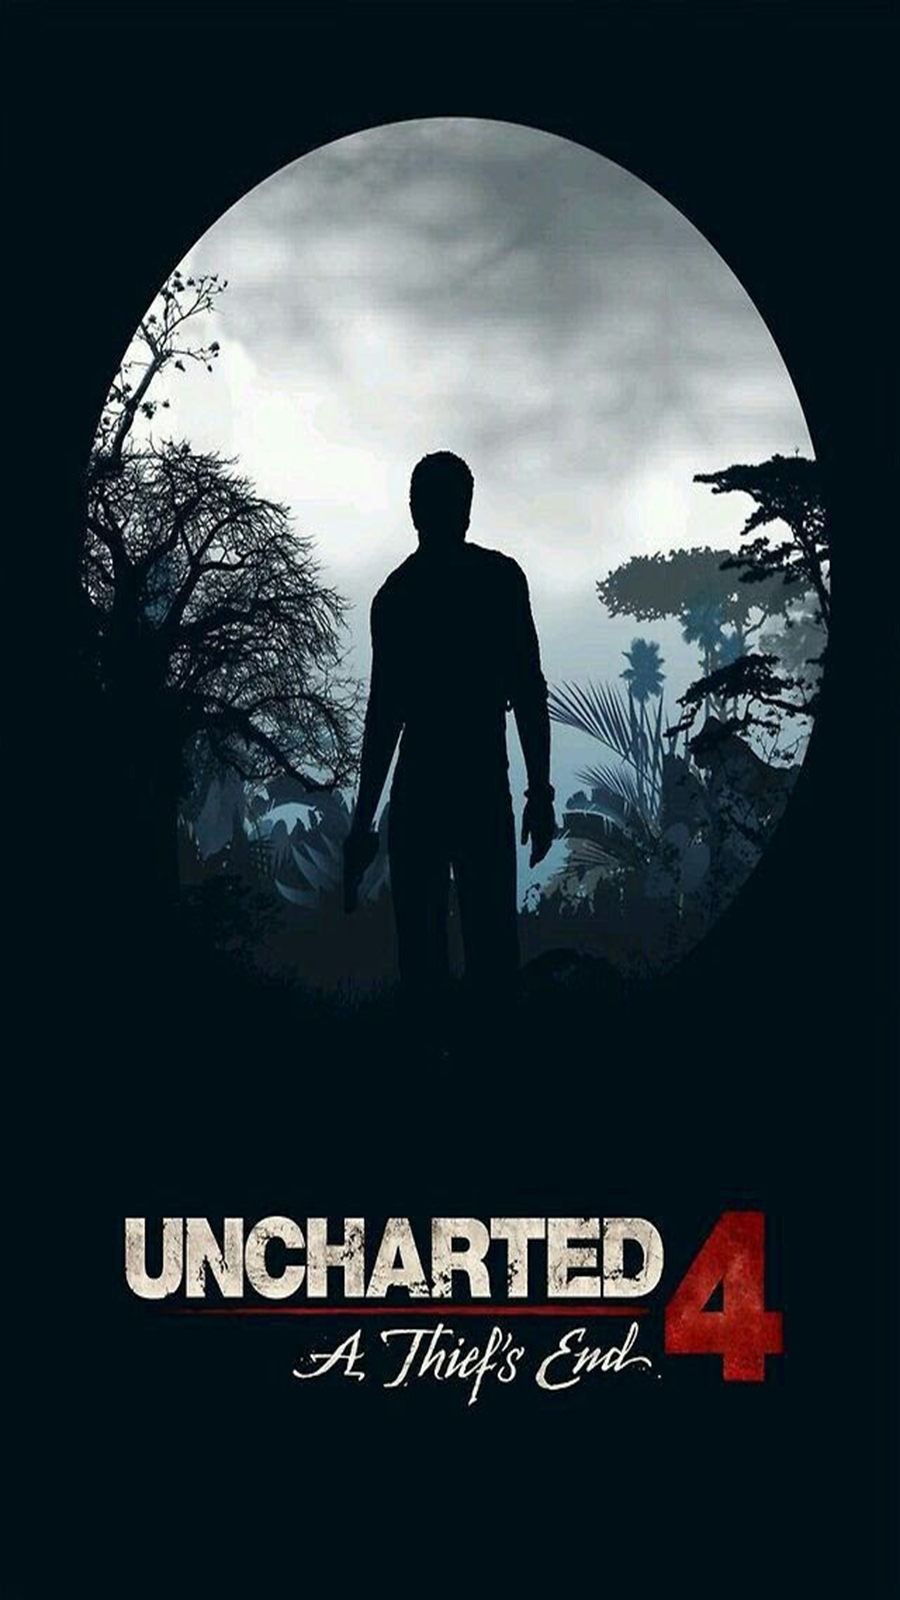 Uncharted Wallpapers For Mobile